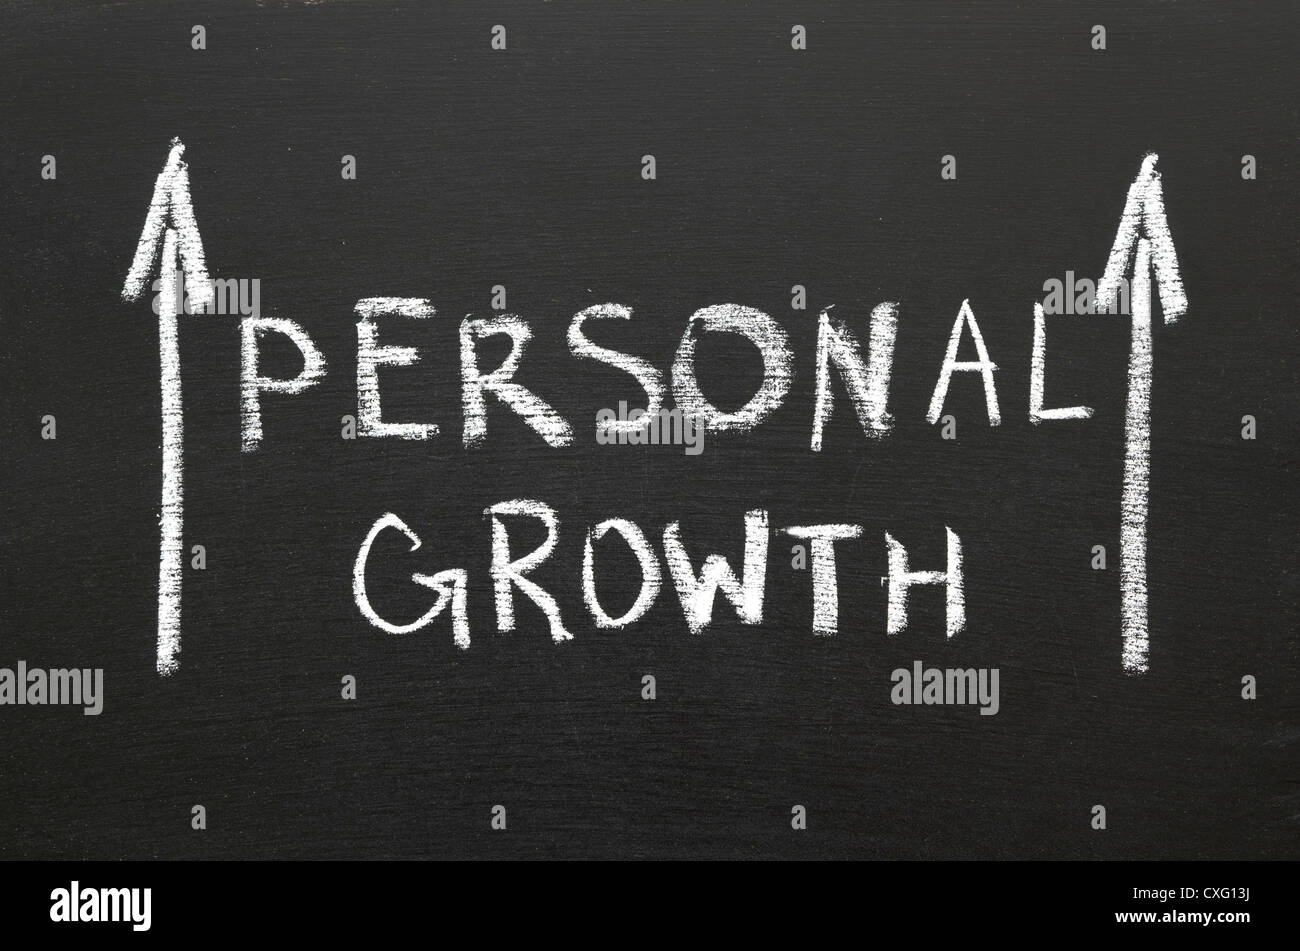 Personal growth phrase handwritten on the chalkboard with rising arrows - Stock Image